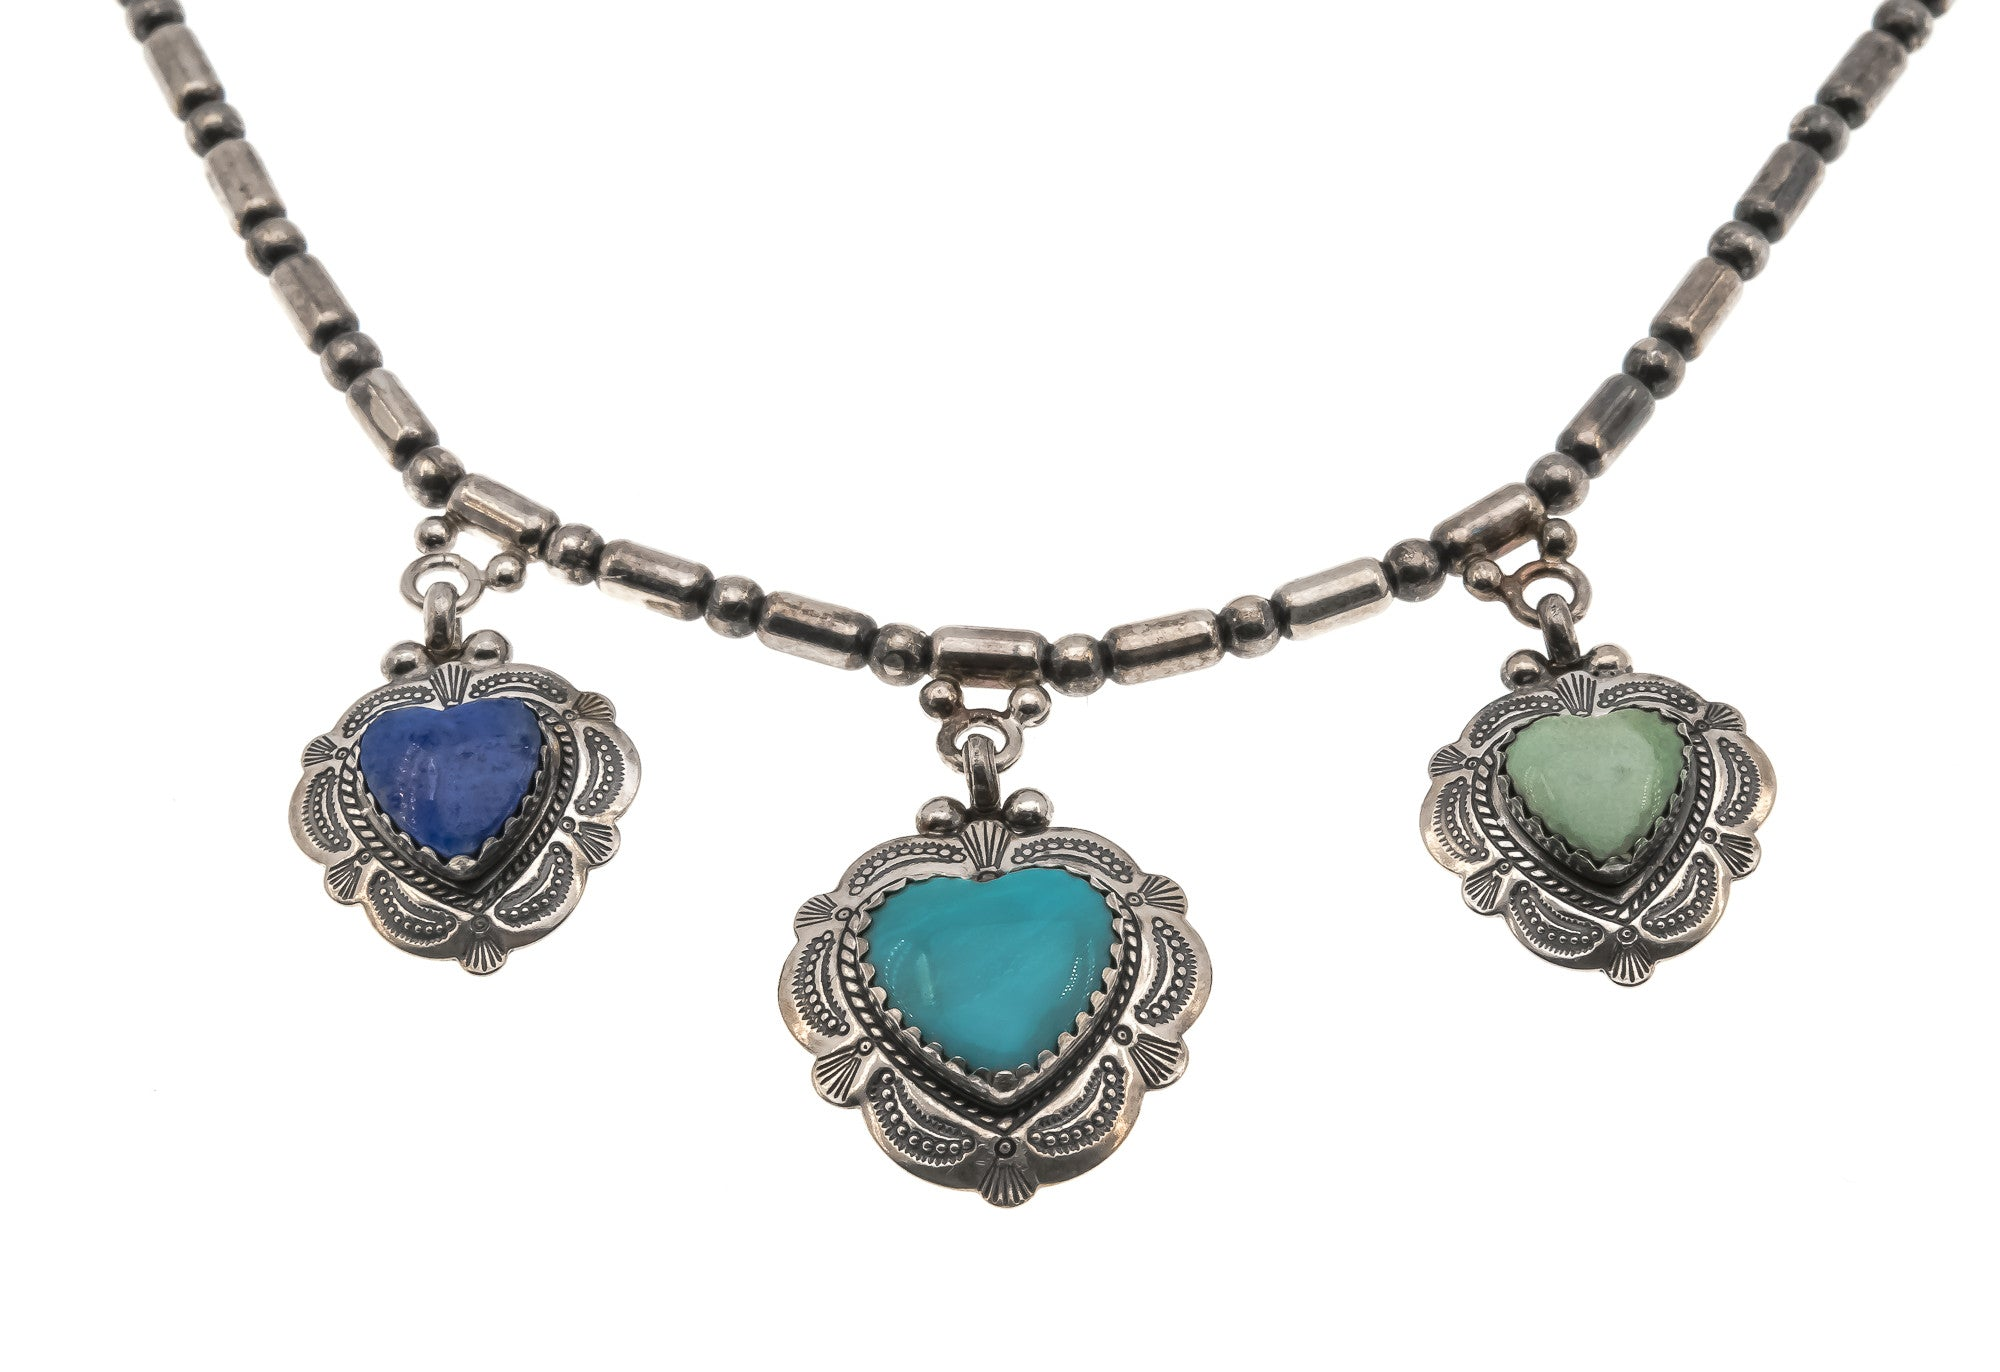 Four Shades of Grey & Blue- Vintage Sterling Silver Turquoise Heart Necklace (VN021)